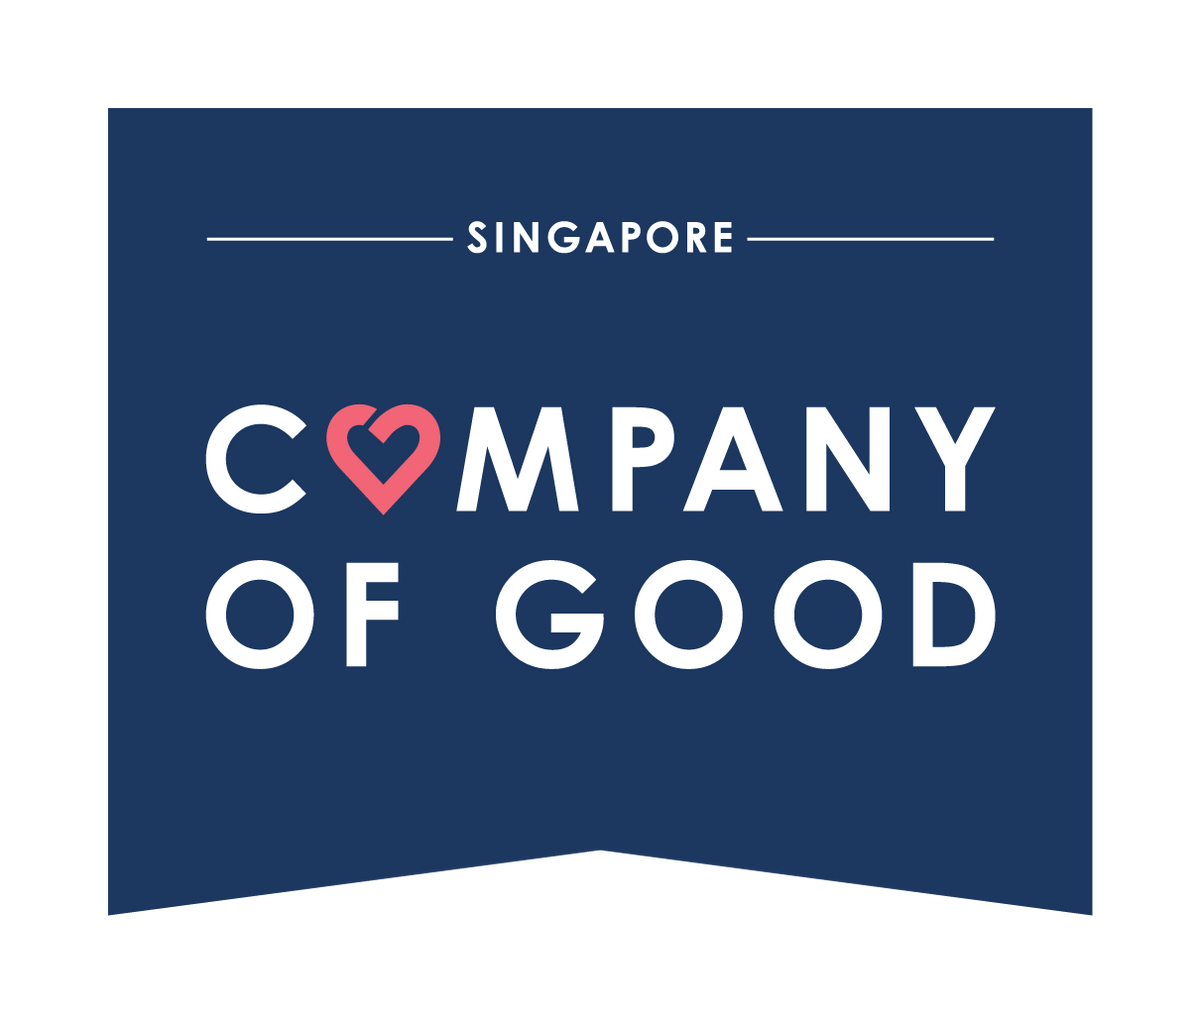 dogood.sg partners Collaborate for Good, an initiative by NVPC's Company of Good that curate opportunities and facilitate partnerships among companies with a focus on opportunities that make doing good part of our daily lives.